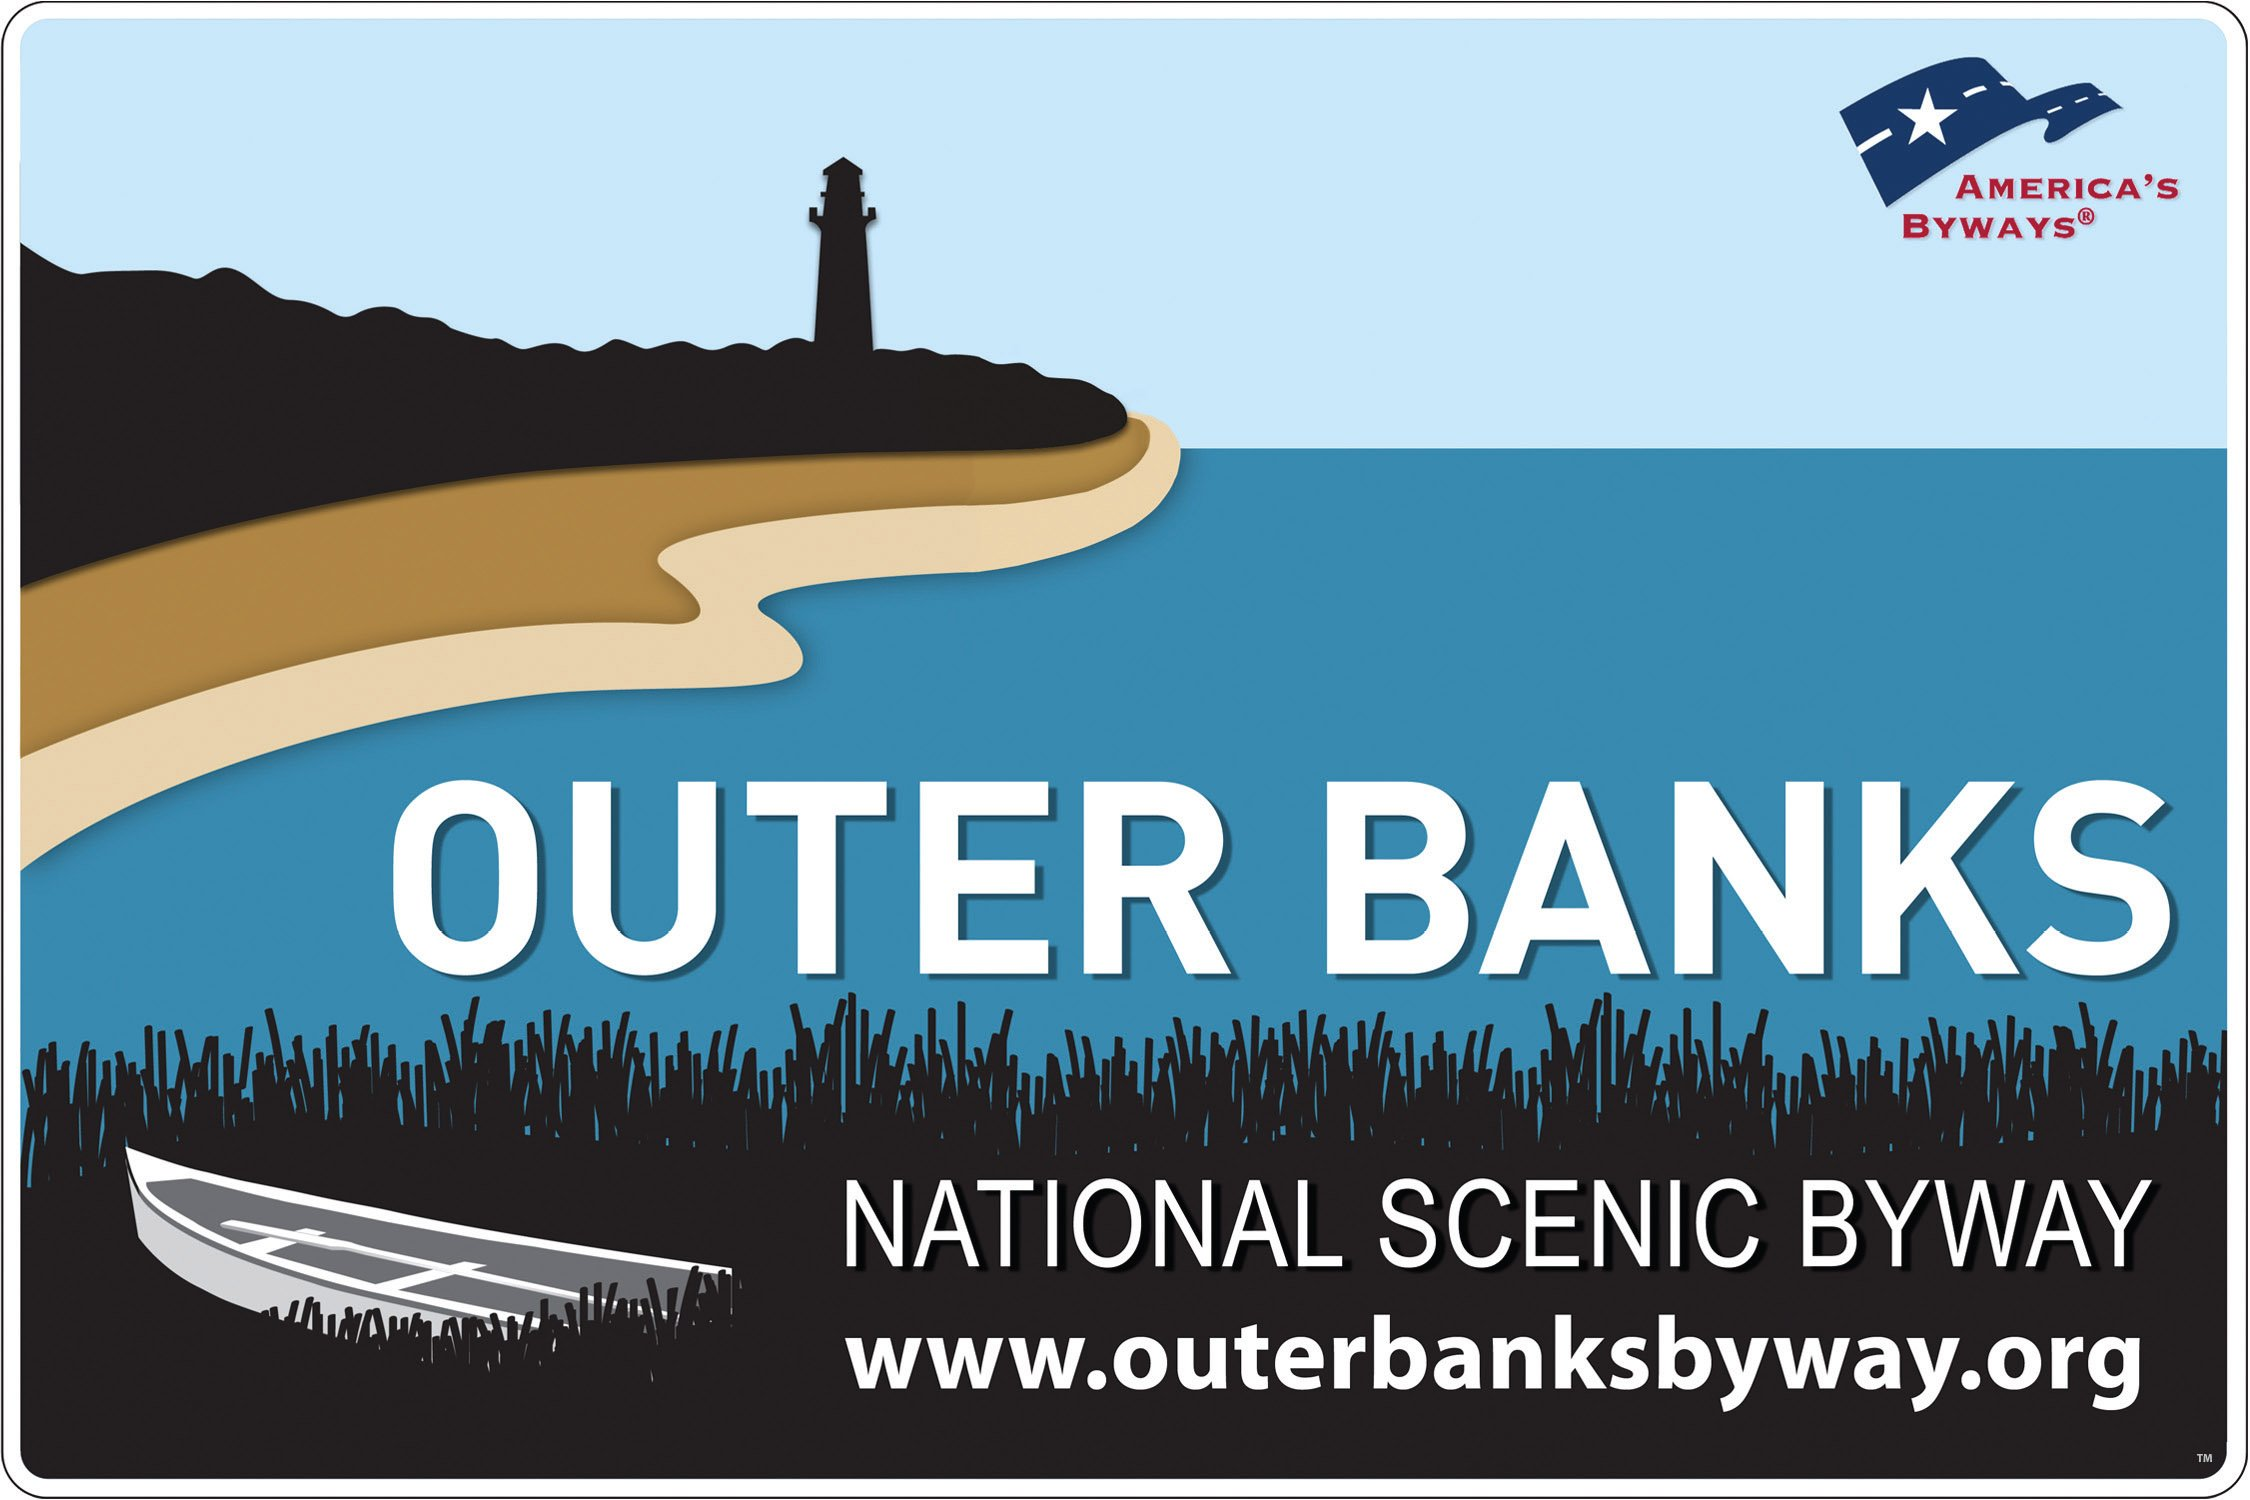 OBNSB_BumperSticker_05-08-2013_TM